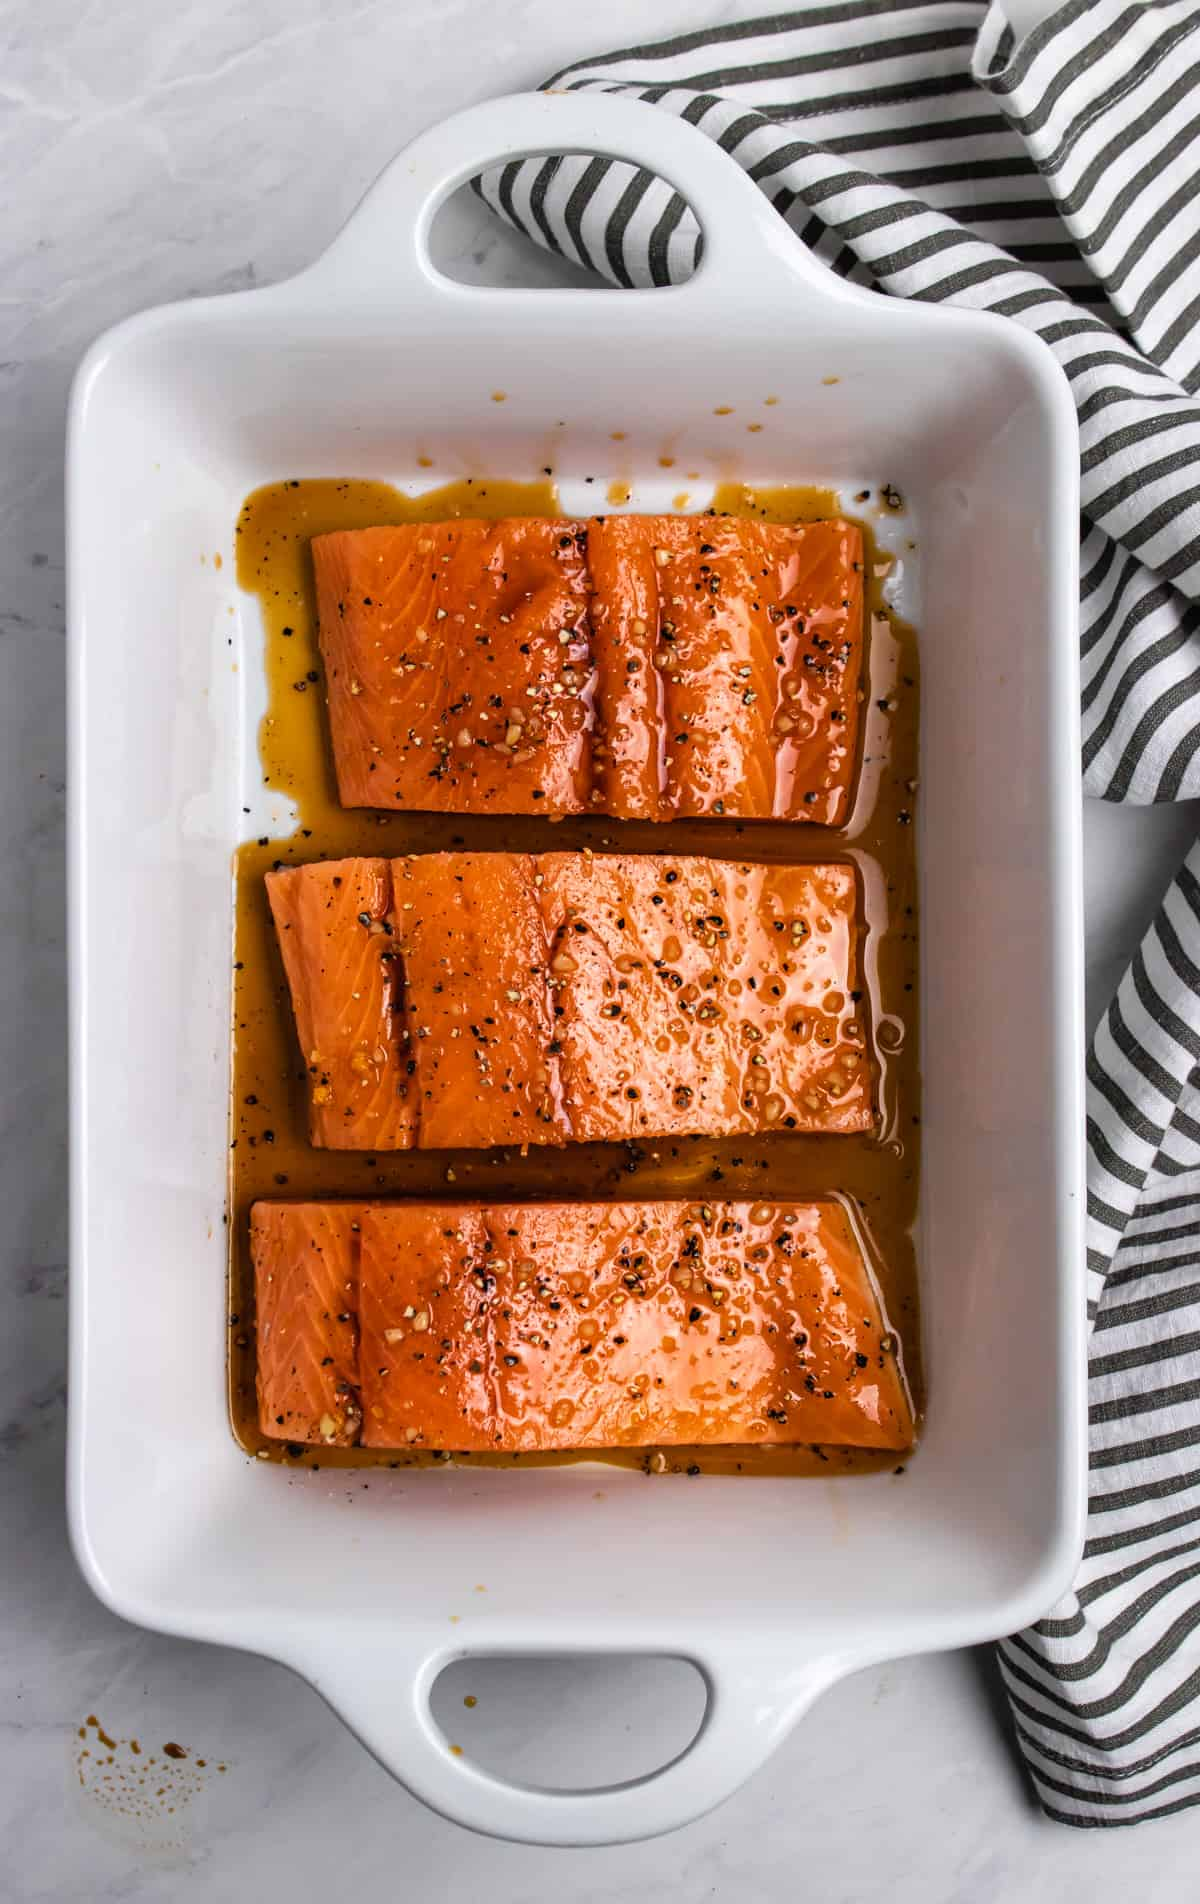 Overhead view of salmon in white dish with glaze on top.